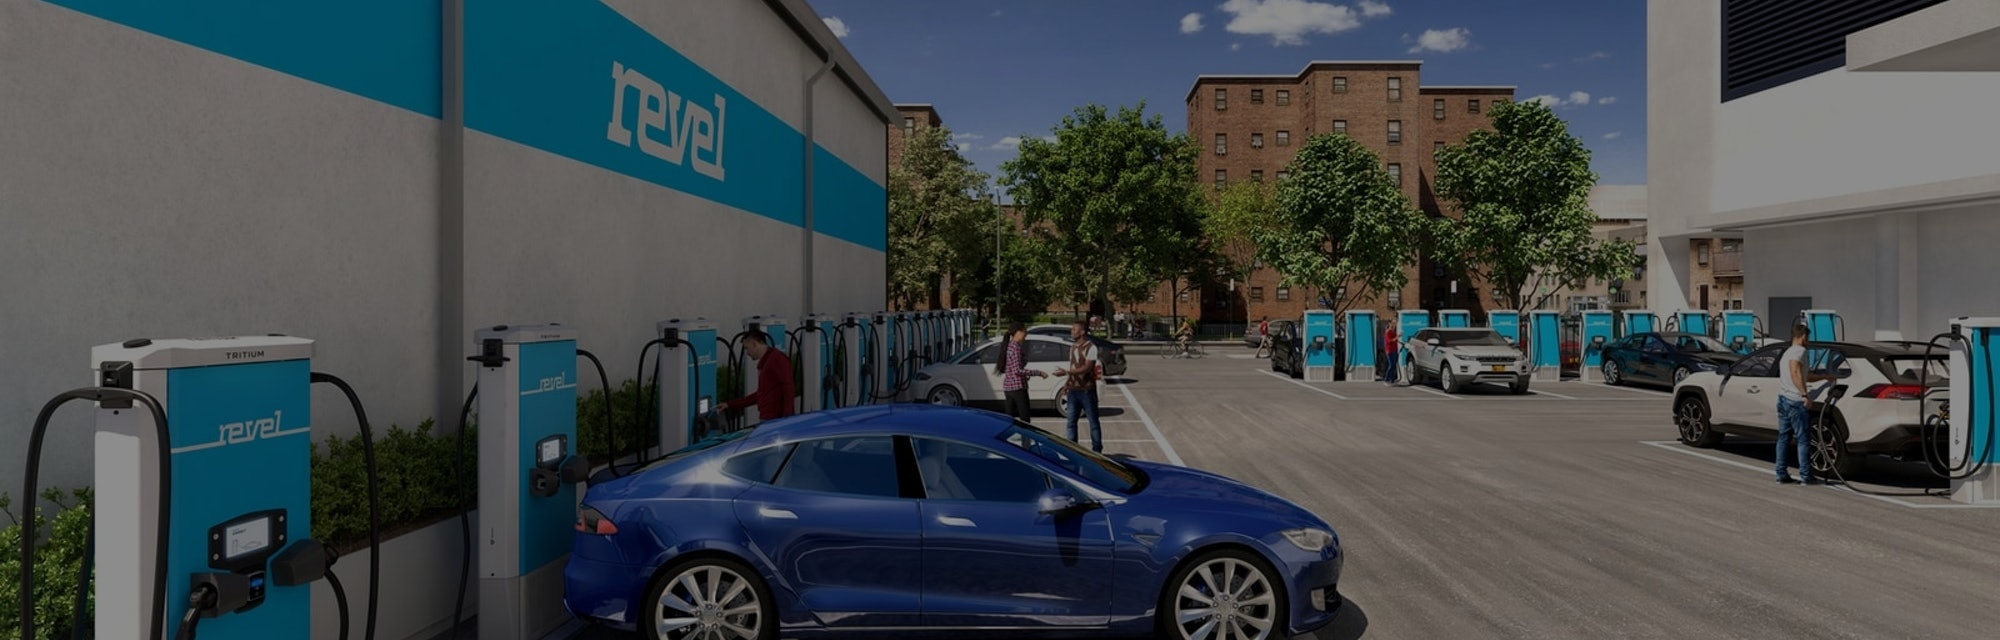 A blue Tesla sits docked at a Revel electric charging station.